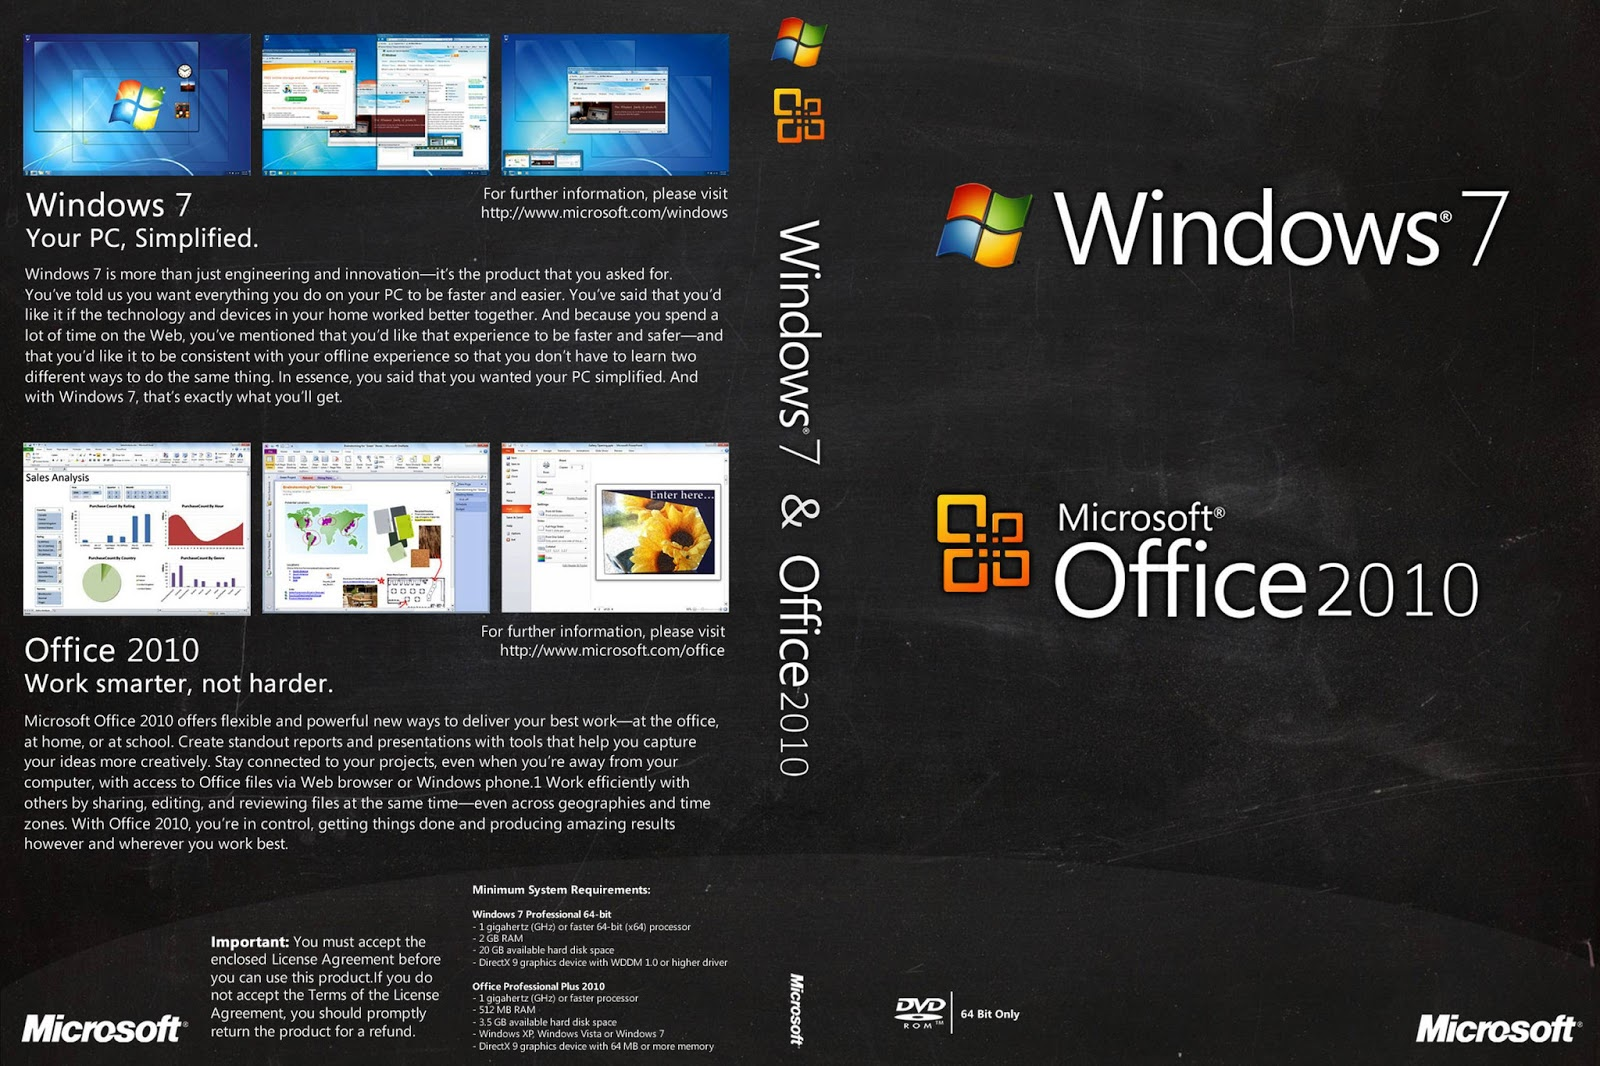 Galeria das capas windows 7 office 2010 custom for Windows 7 bureau